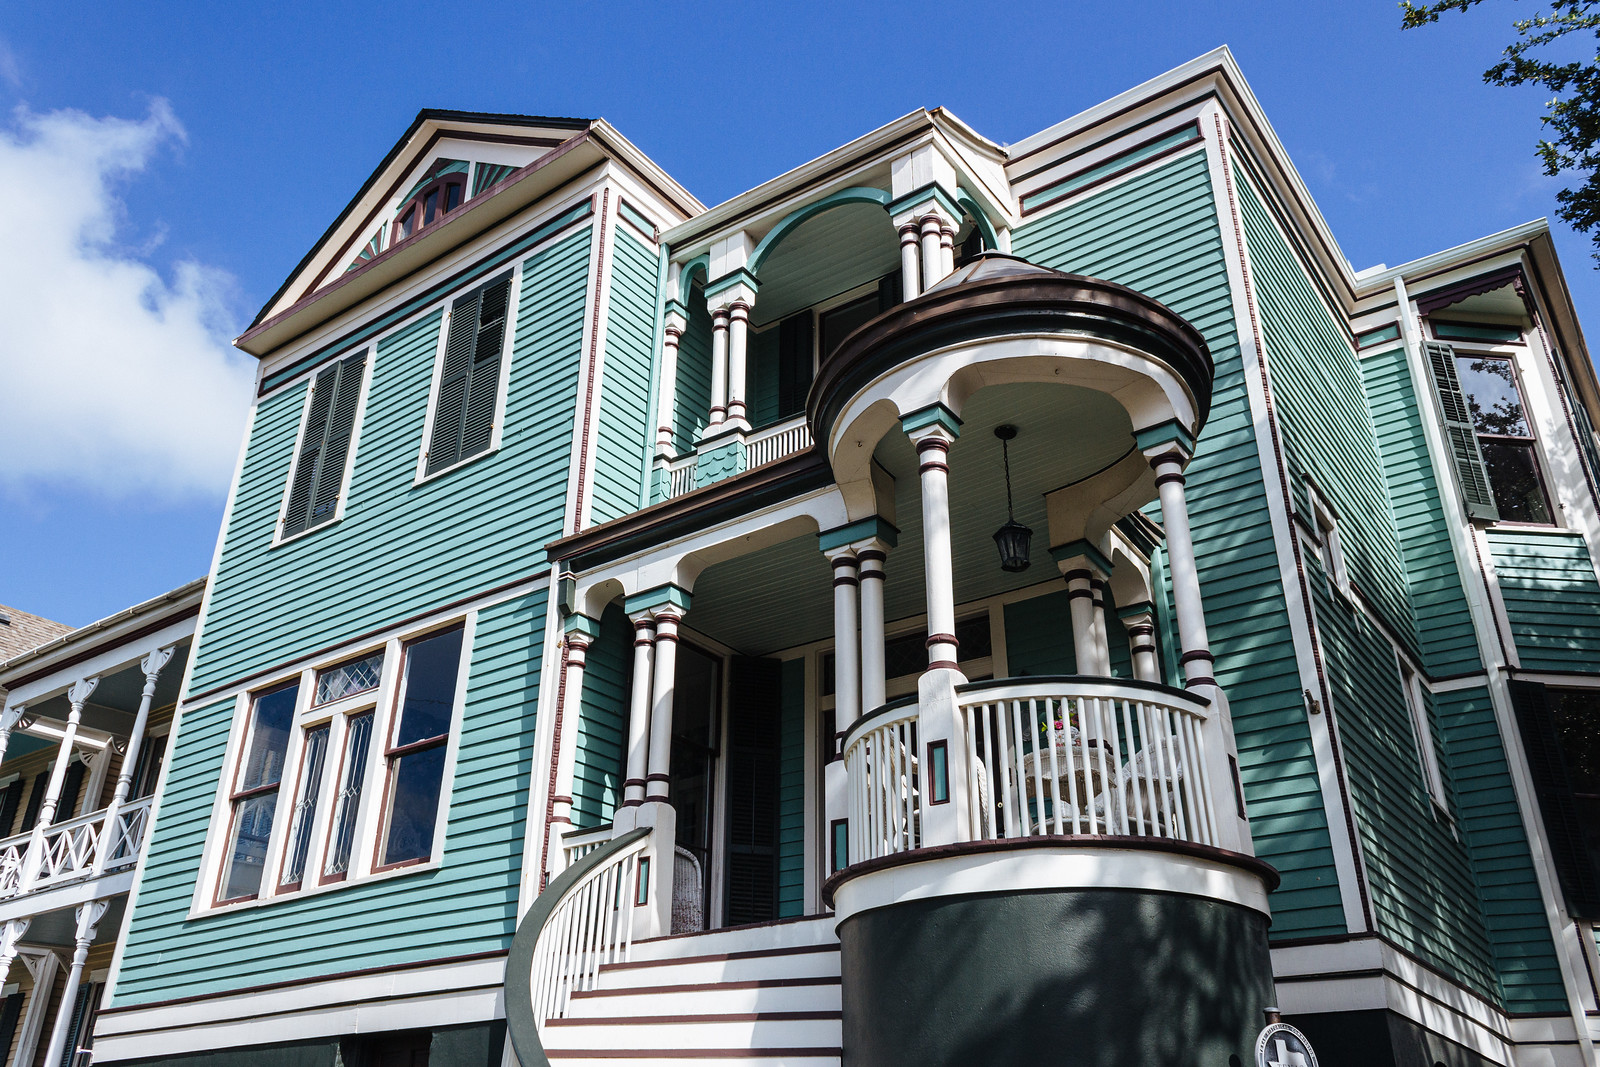 Two-story Victorian home with teal walls